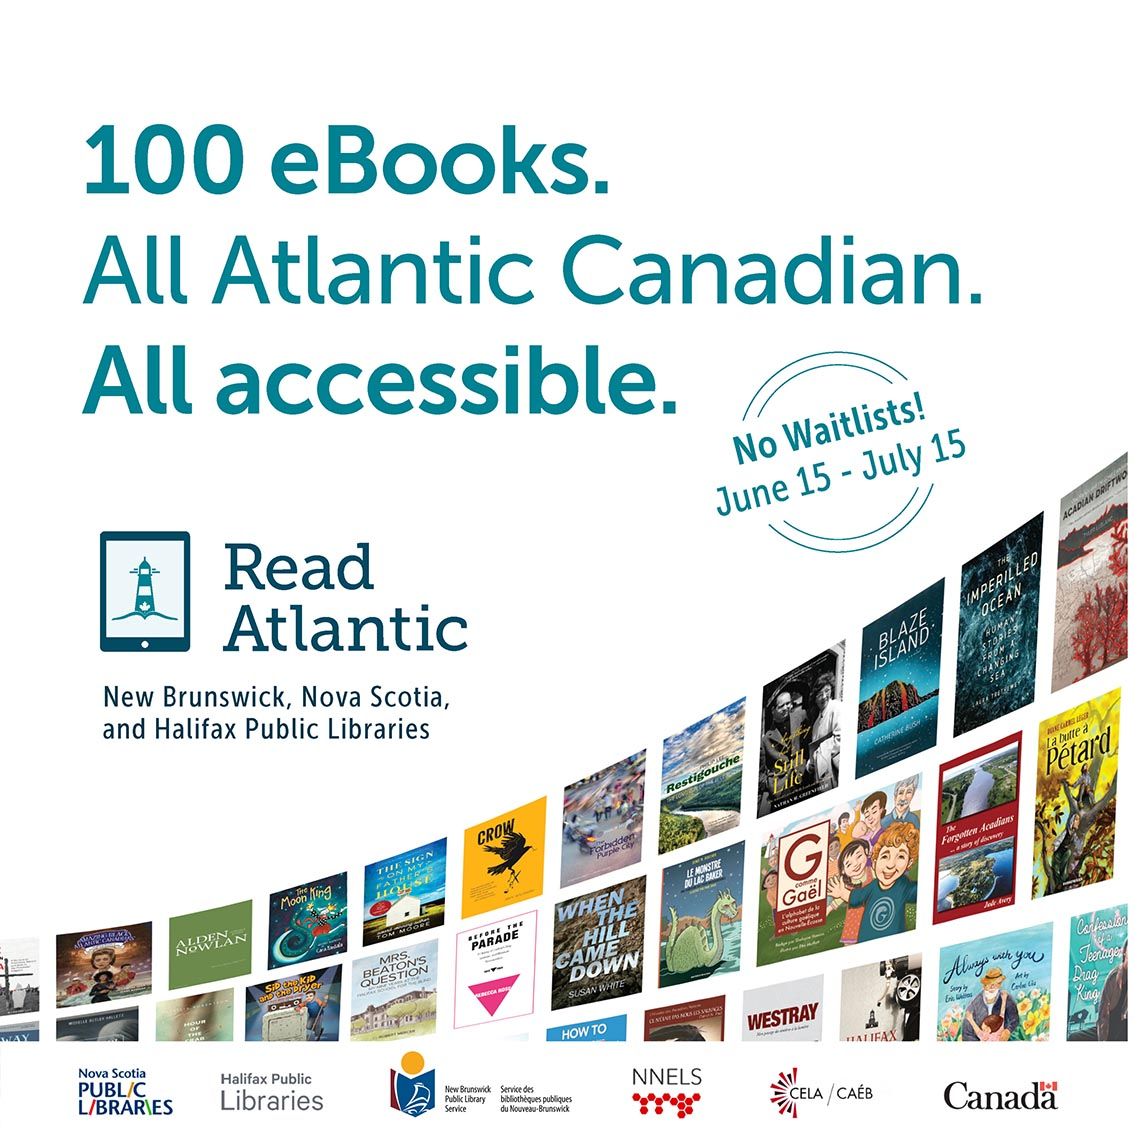 100 ebooks: All Atlantic Canadian, All Accessible